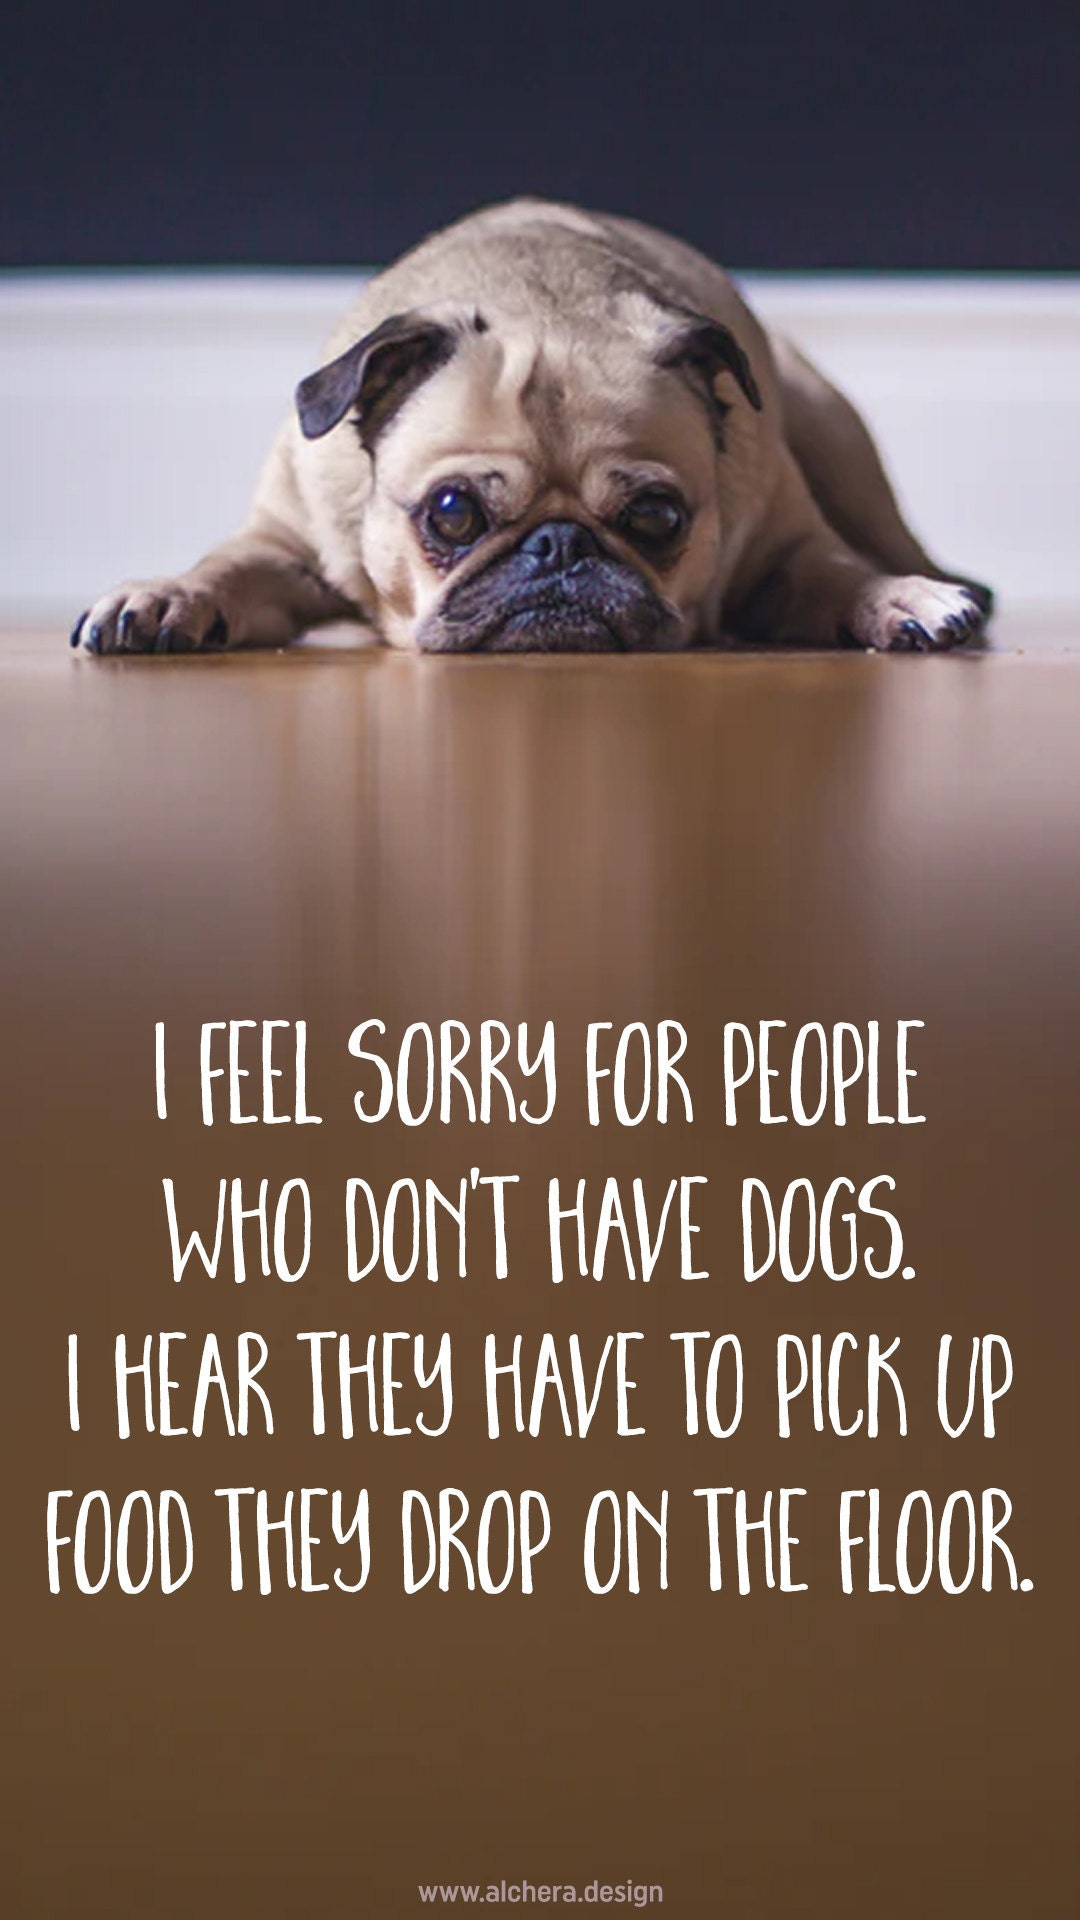 I feel sorry for people who dont have dogs; I hear they have to pick up their own food if they drop it on the floor.